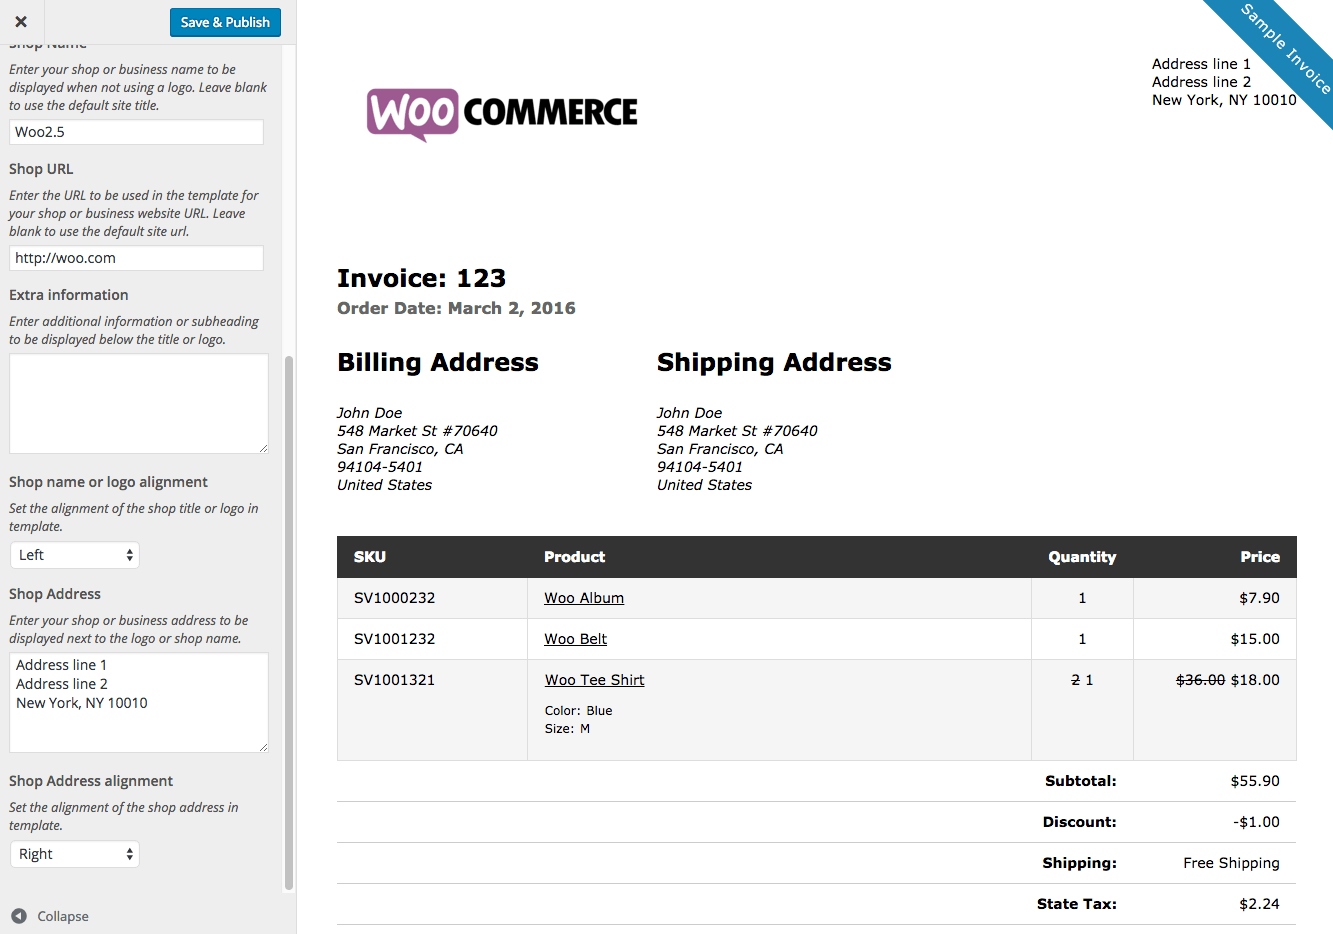 Carsforlessus  Pleasing Woocommerce Print Invoices Amp Packing Lists  Woocommerce Docs With Remarkable Woocommerce Print Invoices  Packing Lists Customizer With Archaic Read Receipt On Mac Mail Also Format Rent Receipt In Addition Equipment Receipt Form And Receipt Format In Word As Well As Receipts Templates Free Additionally Fees Receipt Format From Docswoocommercecom With Carsforlessus  Remarkable Woocommerce Print Invoices Amp Packing Lists  Woocommerce Docs With Archaic Woocommerce Print Invoices  Packing Lists Customizer And Pleasing Read Receipt On Mac Mail Also Format Rent Receipt In Addition Equipment Receipt Form From Docswoocommercecom